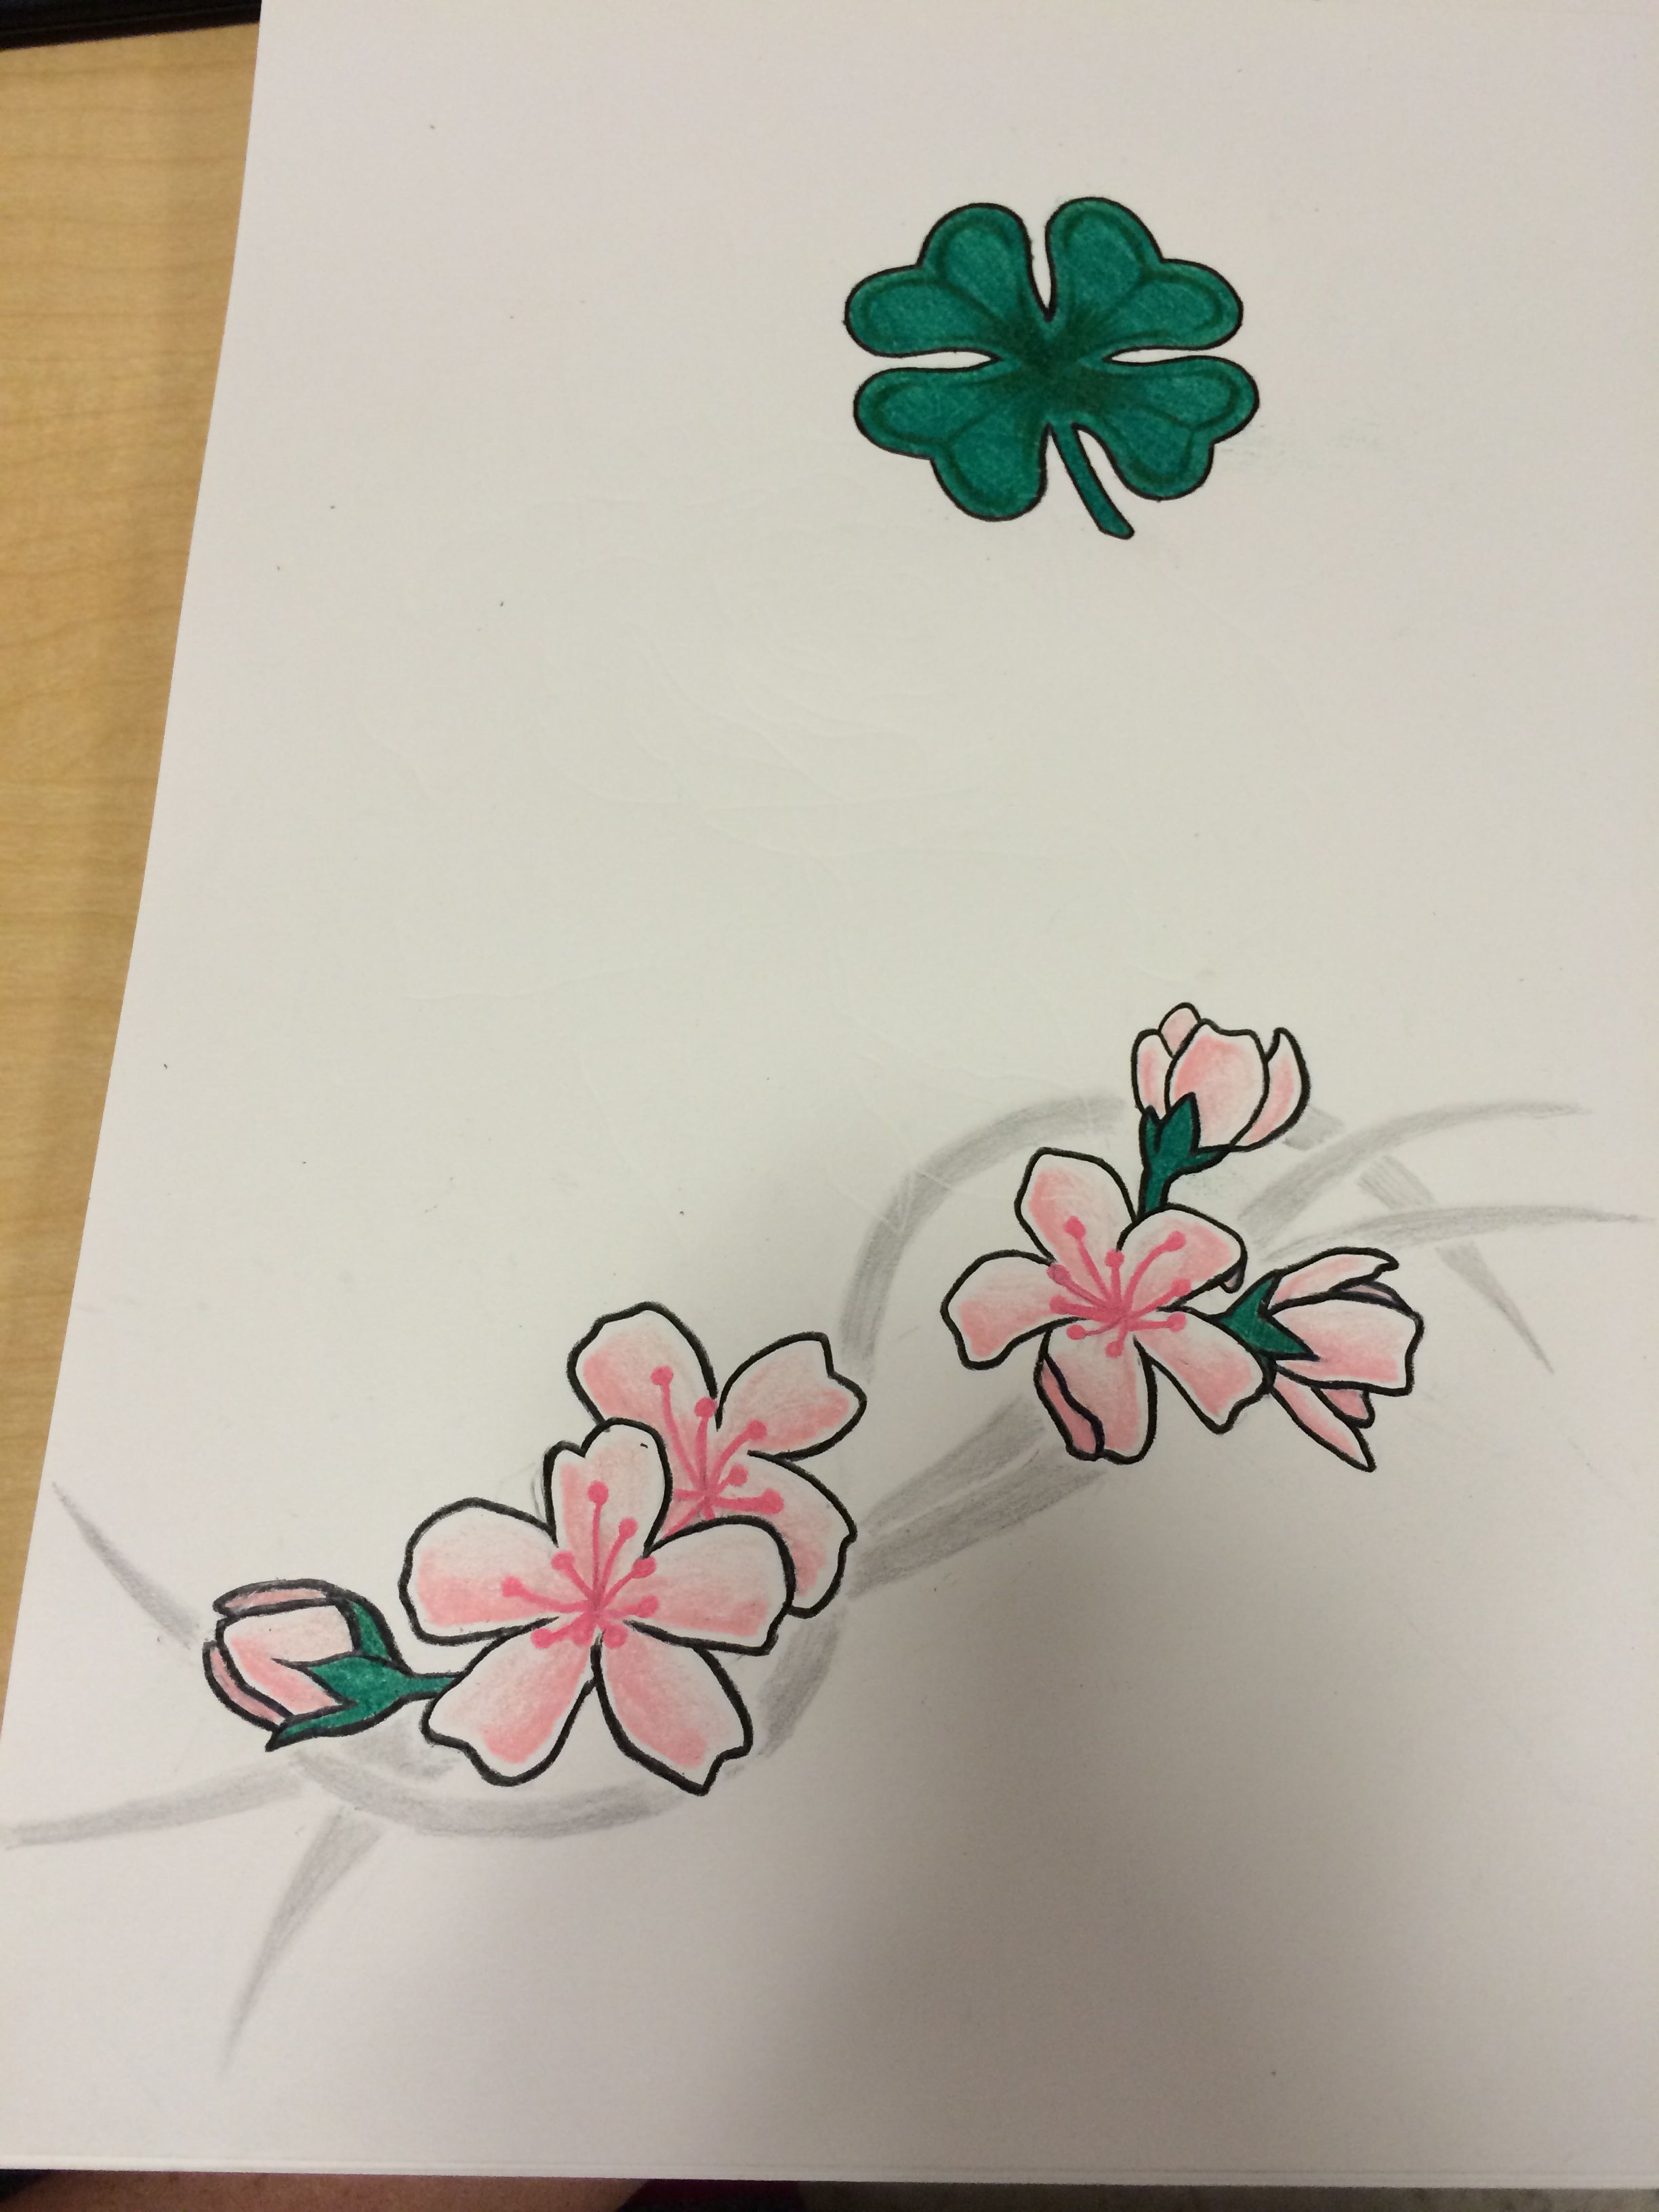 Some tattoo designs for my boss. #clover #fourleafclover #flowers #cherryblossom #tattoo #tattoodesign